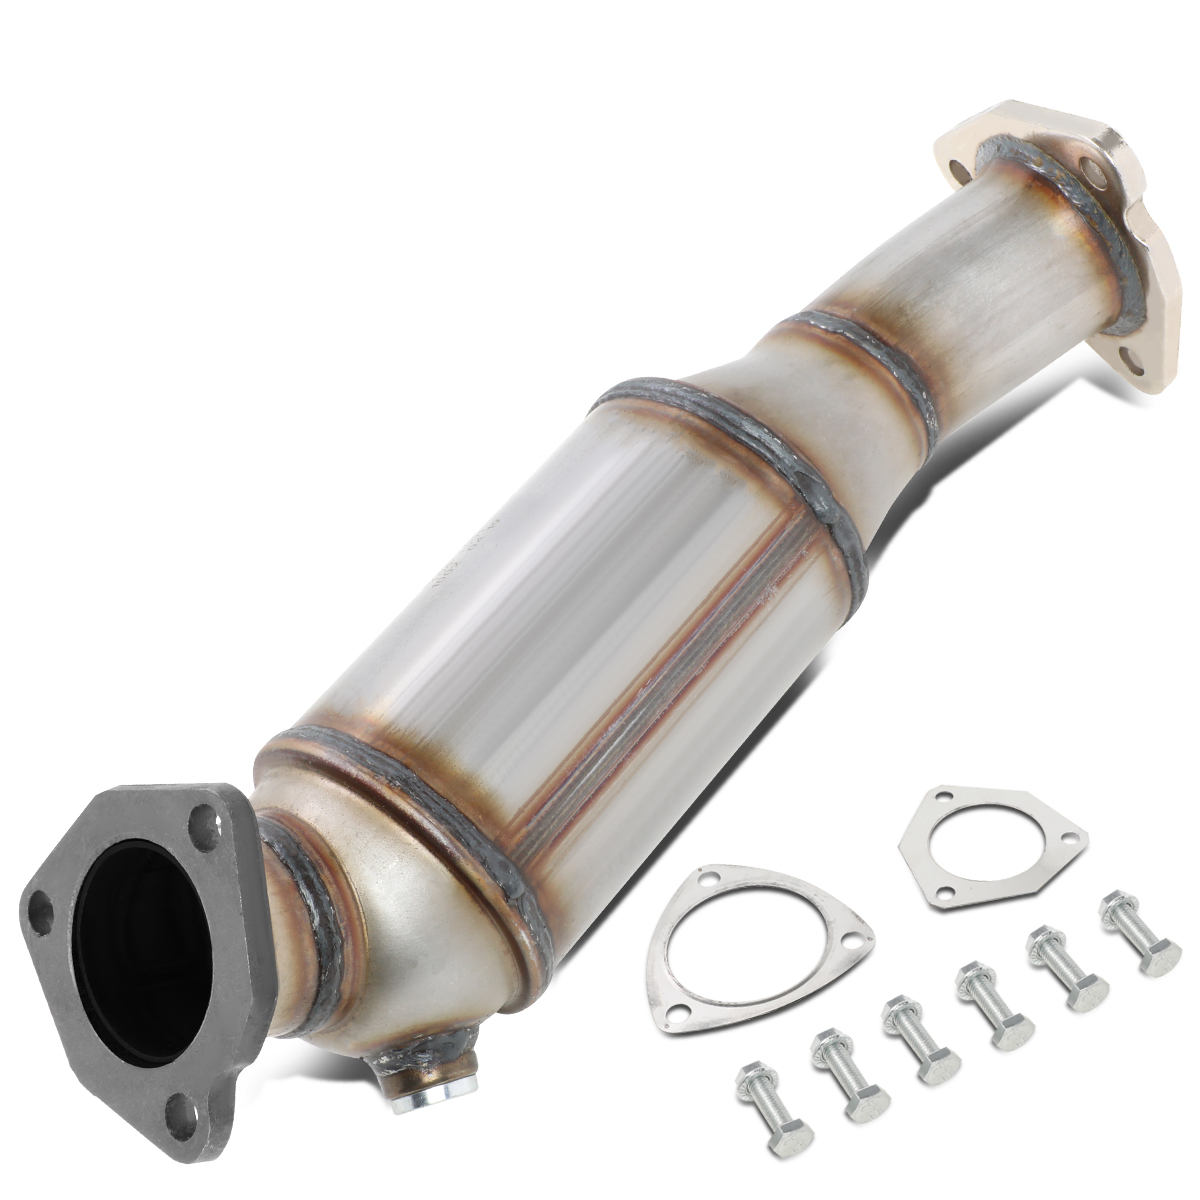 for 1998 to 2005 volkswagen vw passat audi a4 1 8l turbo engine catalytic converter exhaust pipe replacement 99 00 01 02 03 04 06